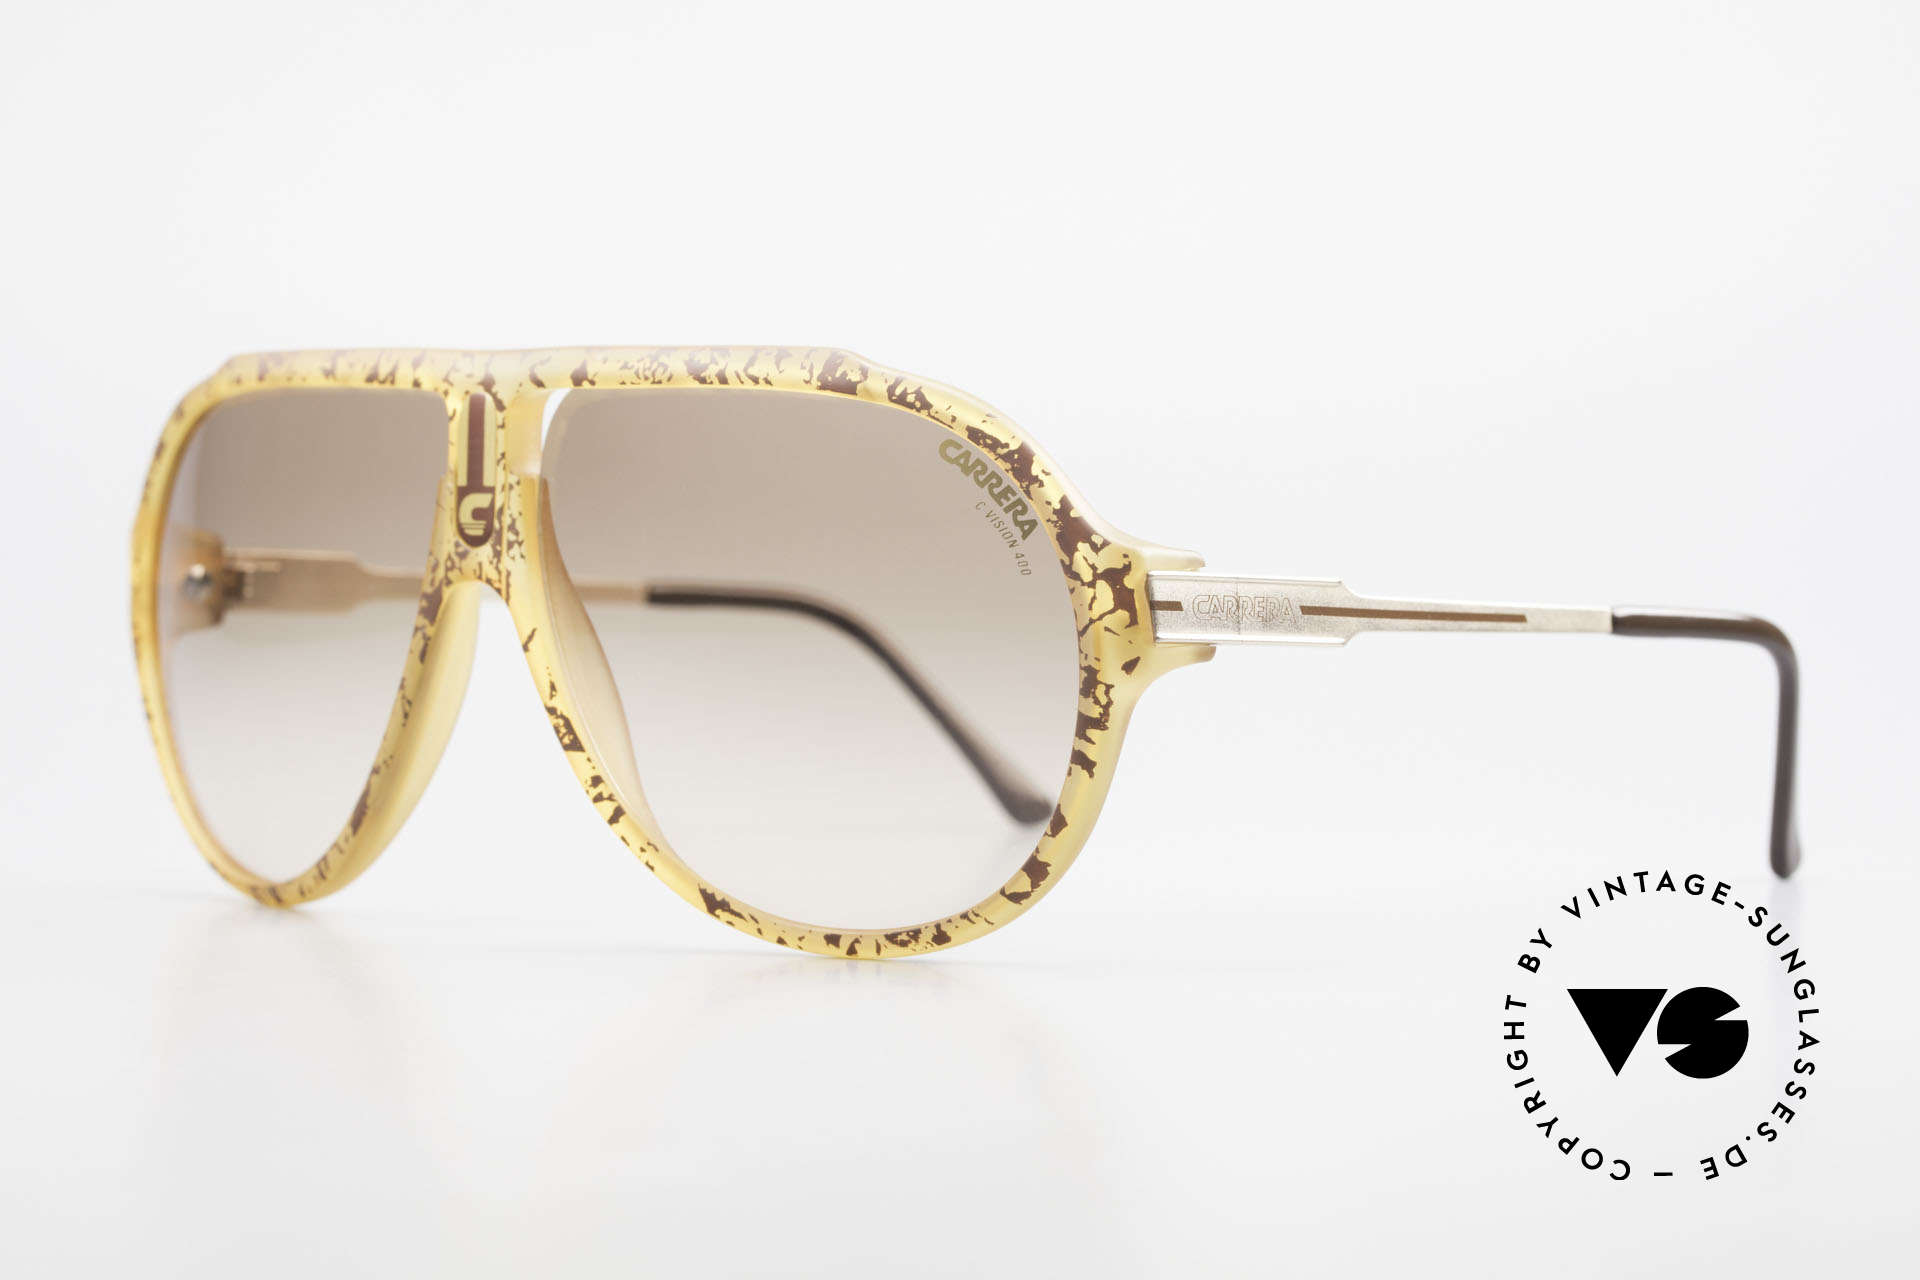 Carrera 5565 Old 1980's Sunglasses Vintage, new old stock (like all our rare vintage Carrera shades), Made for Men and Women